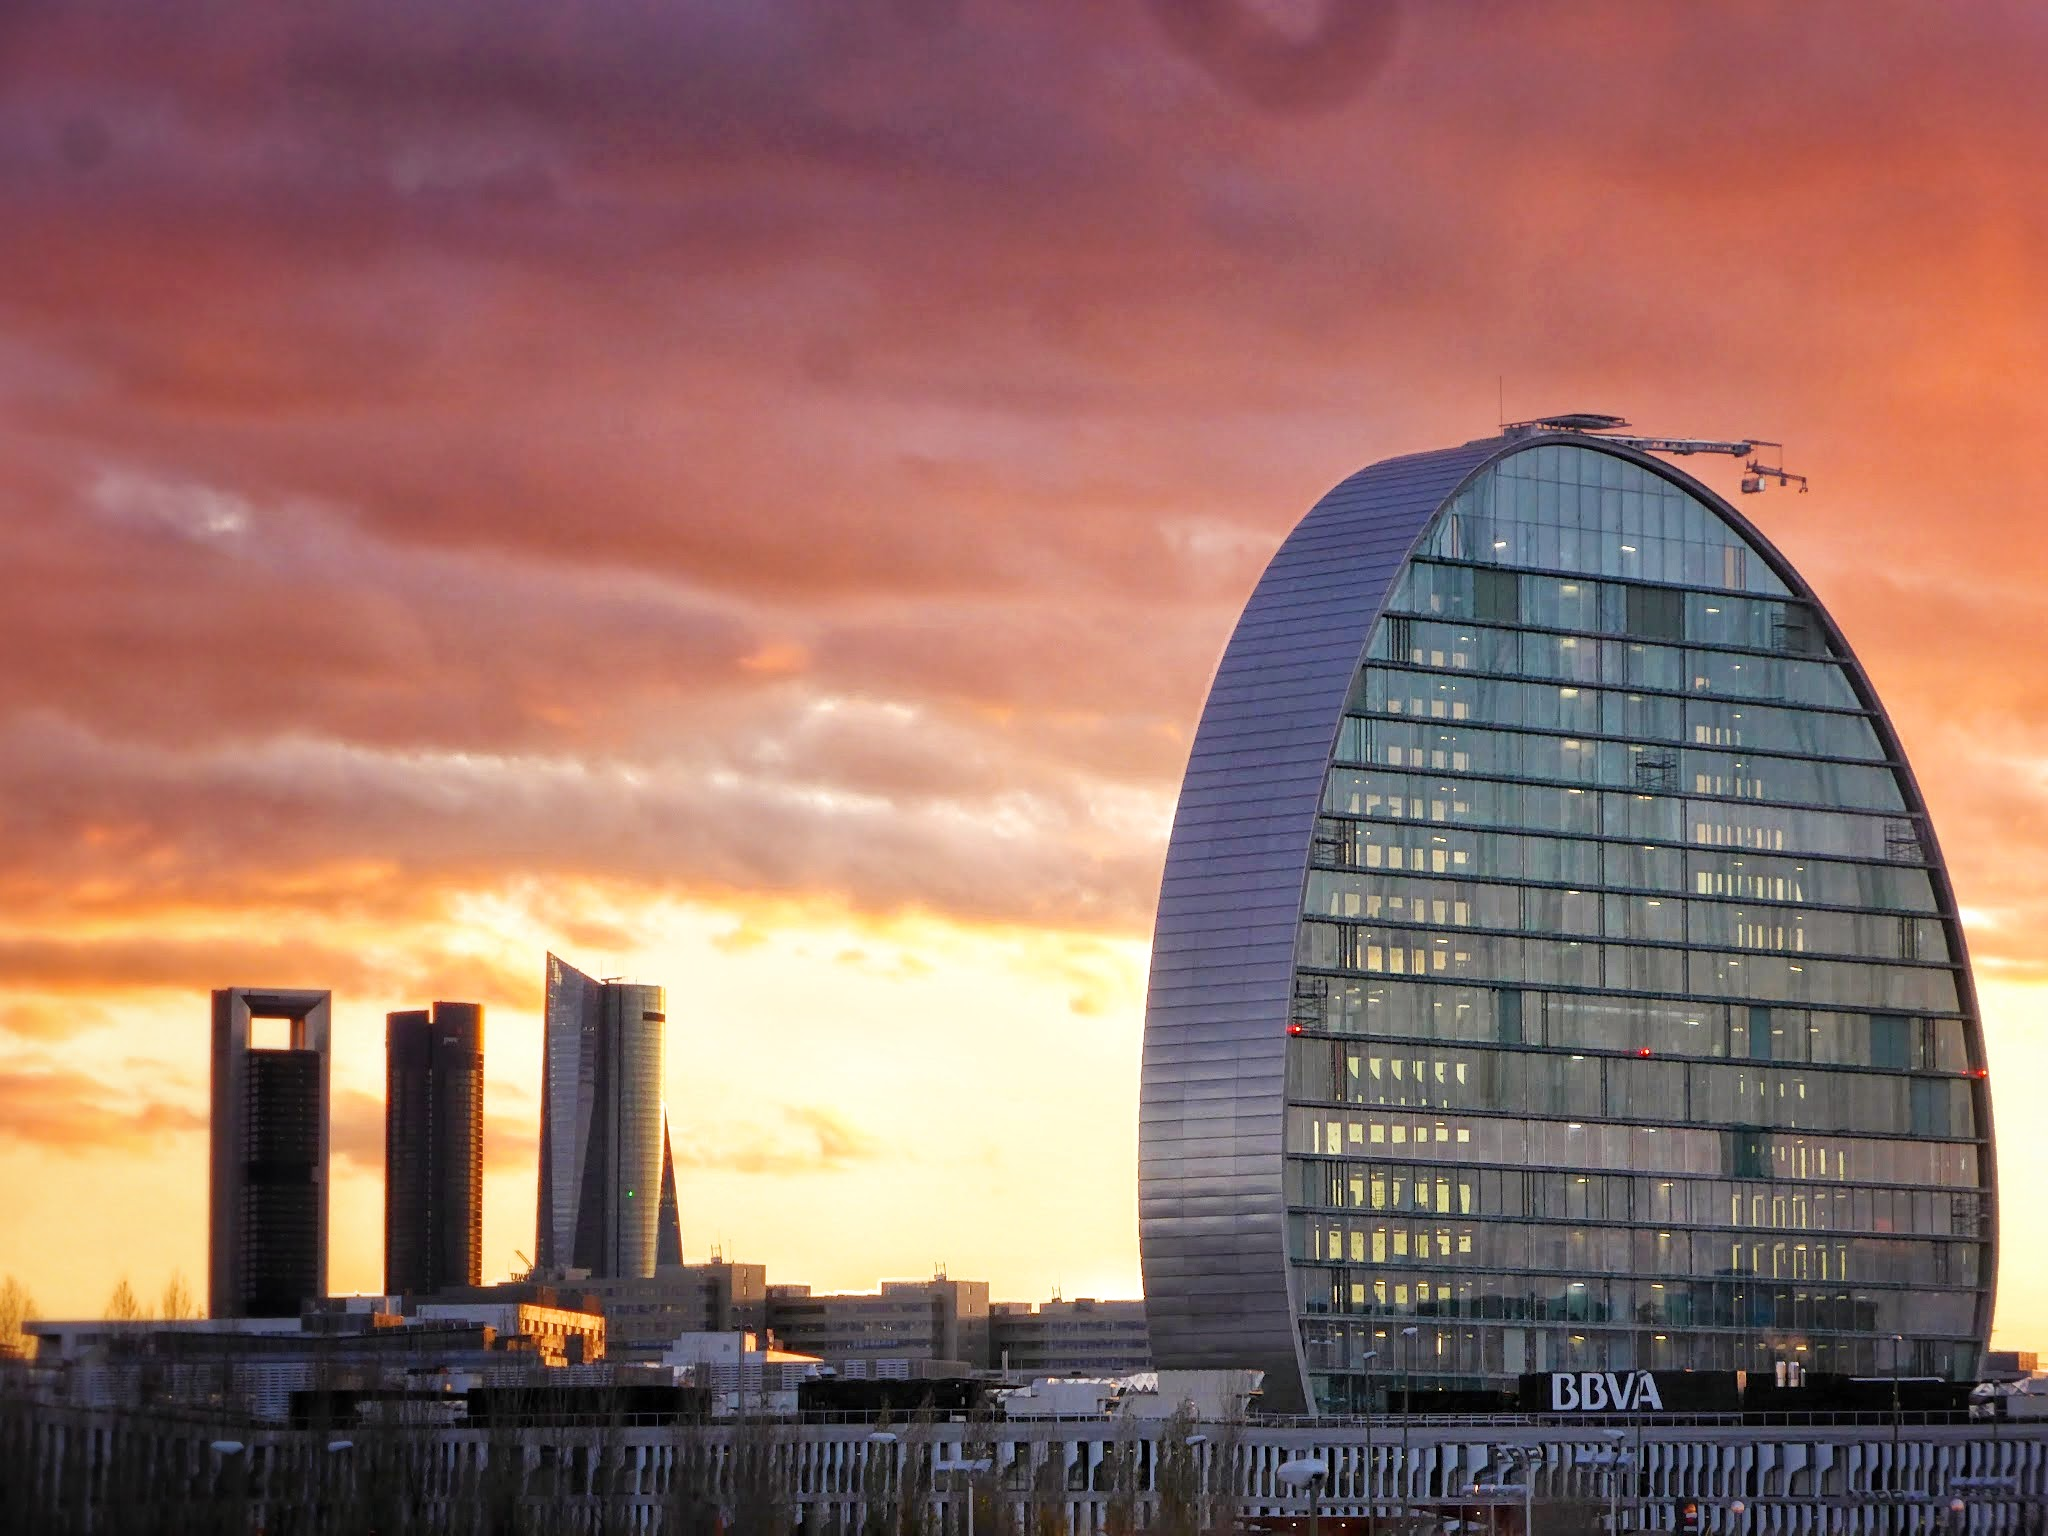 La torre bbva de madrid busca ya nuevos inquilinos for Oficinas bbva madrid capital